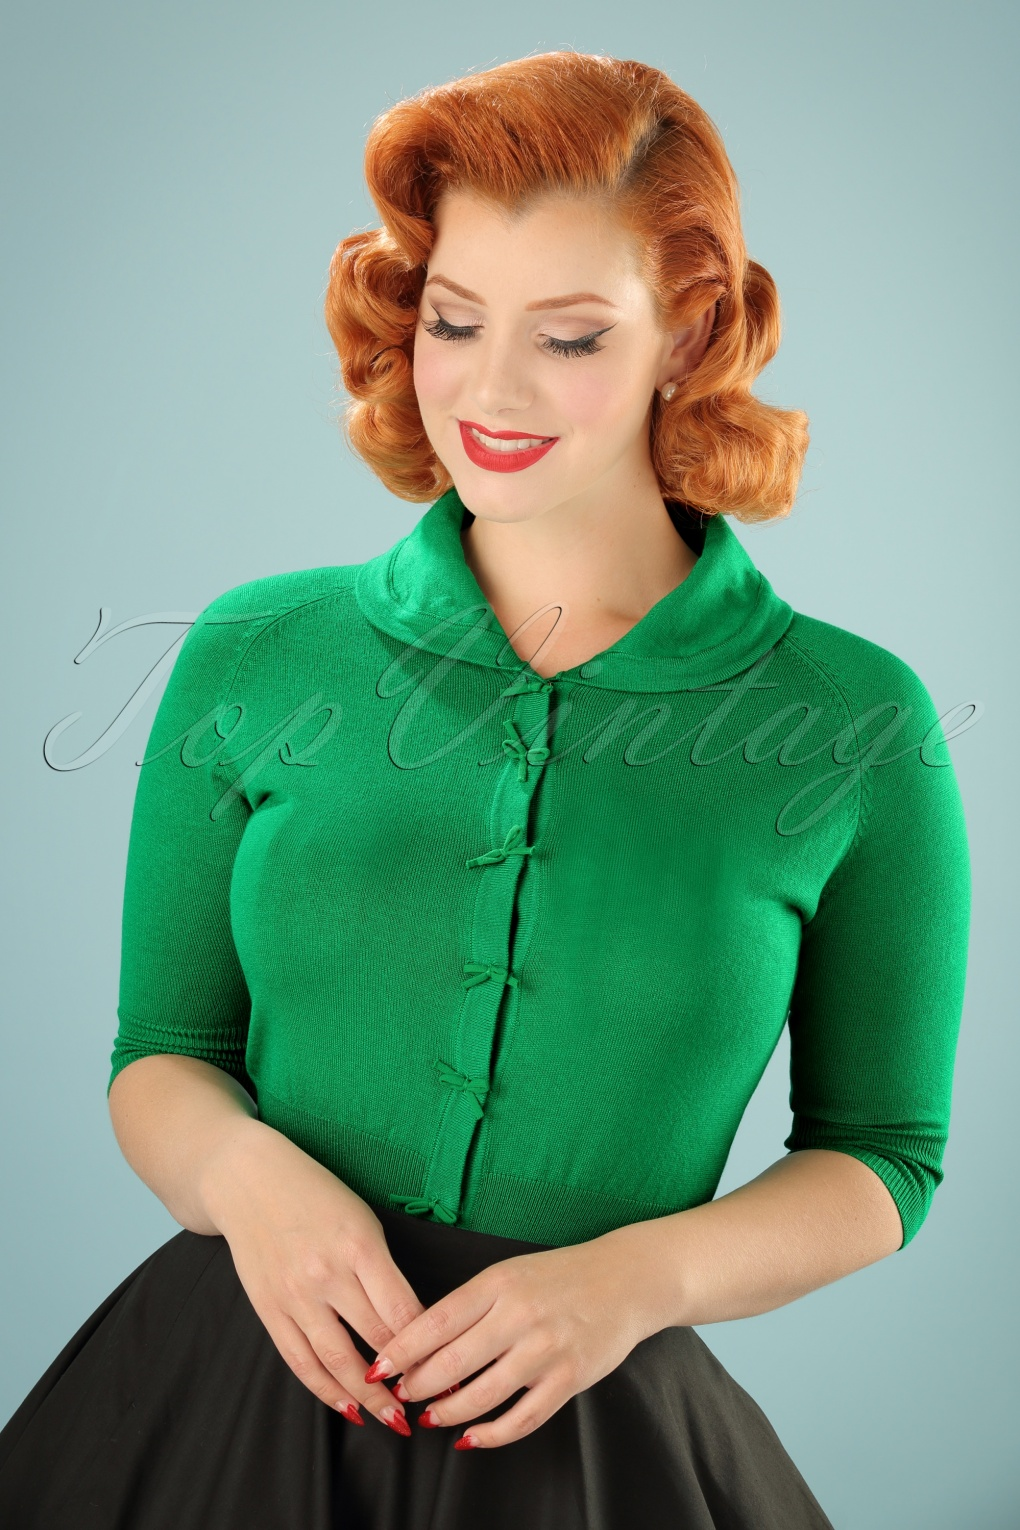 Vintage & Retro Shirts, Halter Tops, Blouses 40s April Bow Cardigan in Green £17.14 AT vintagedancer.com